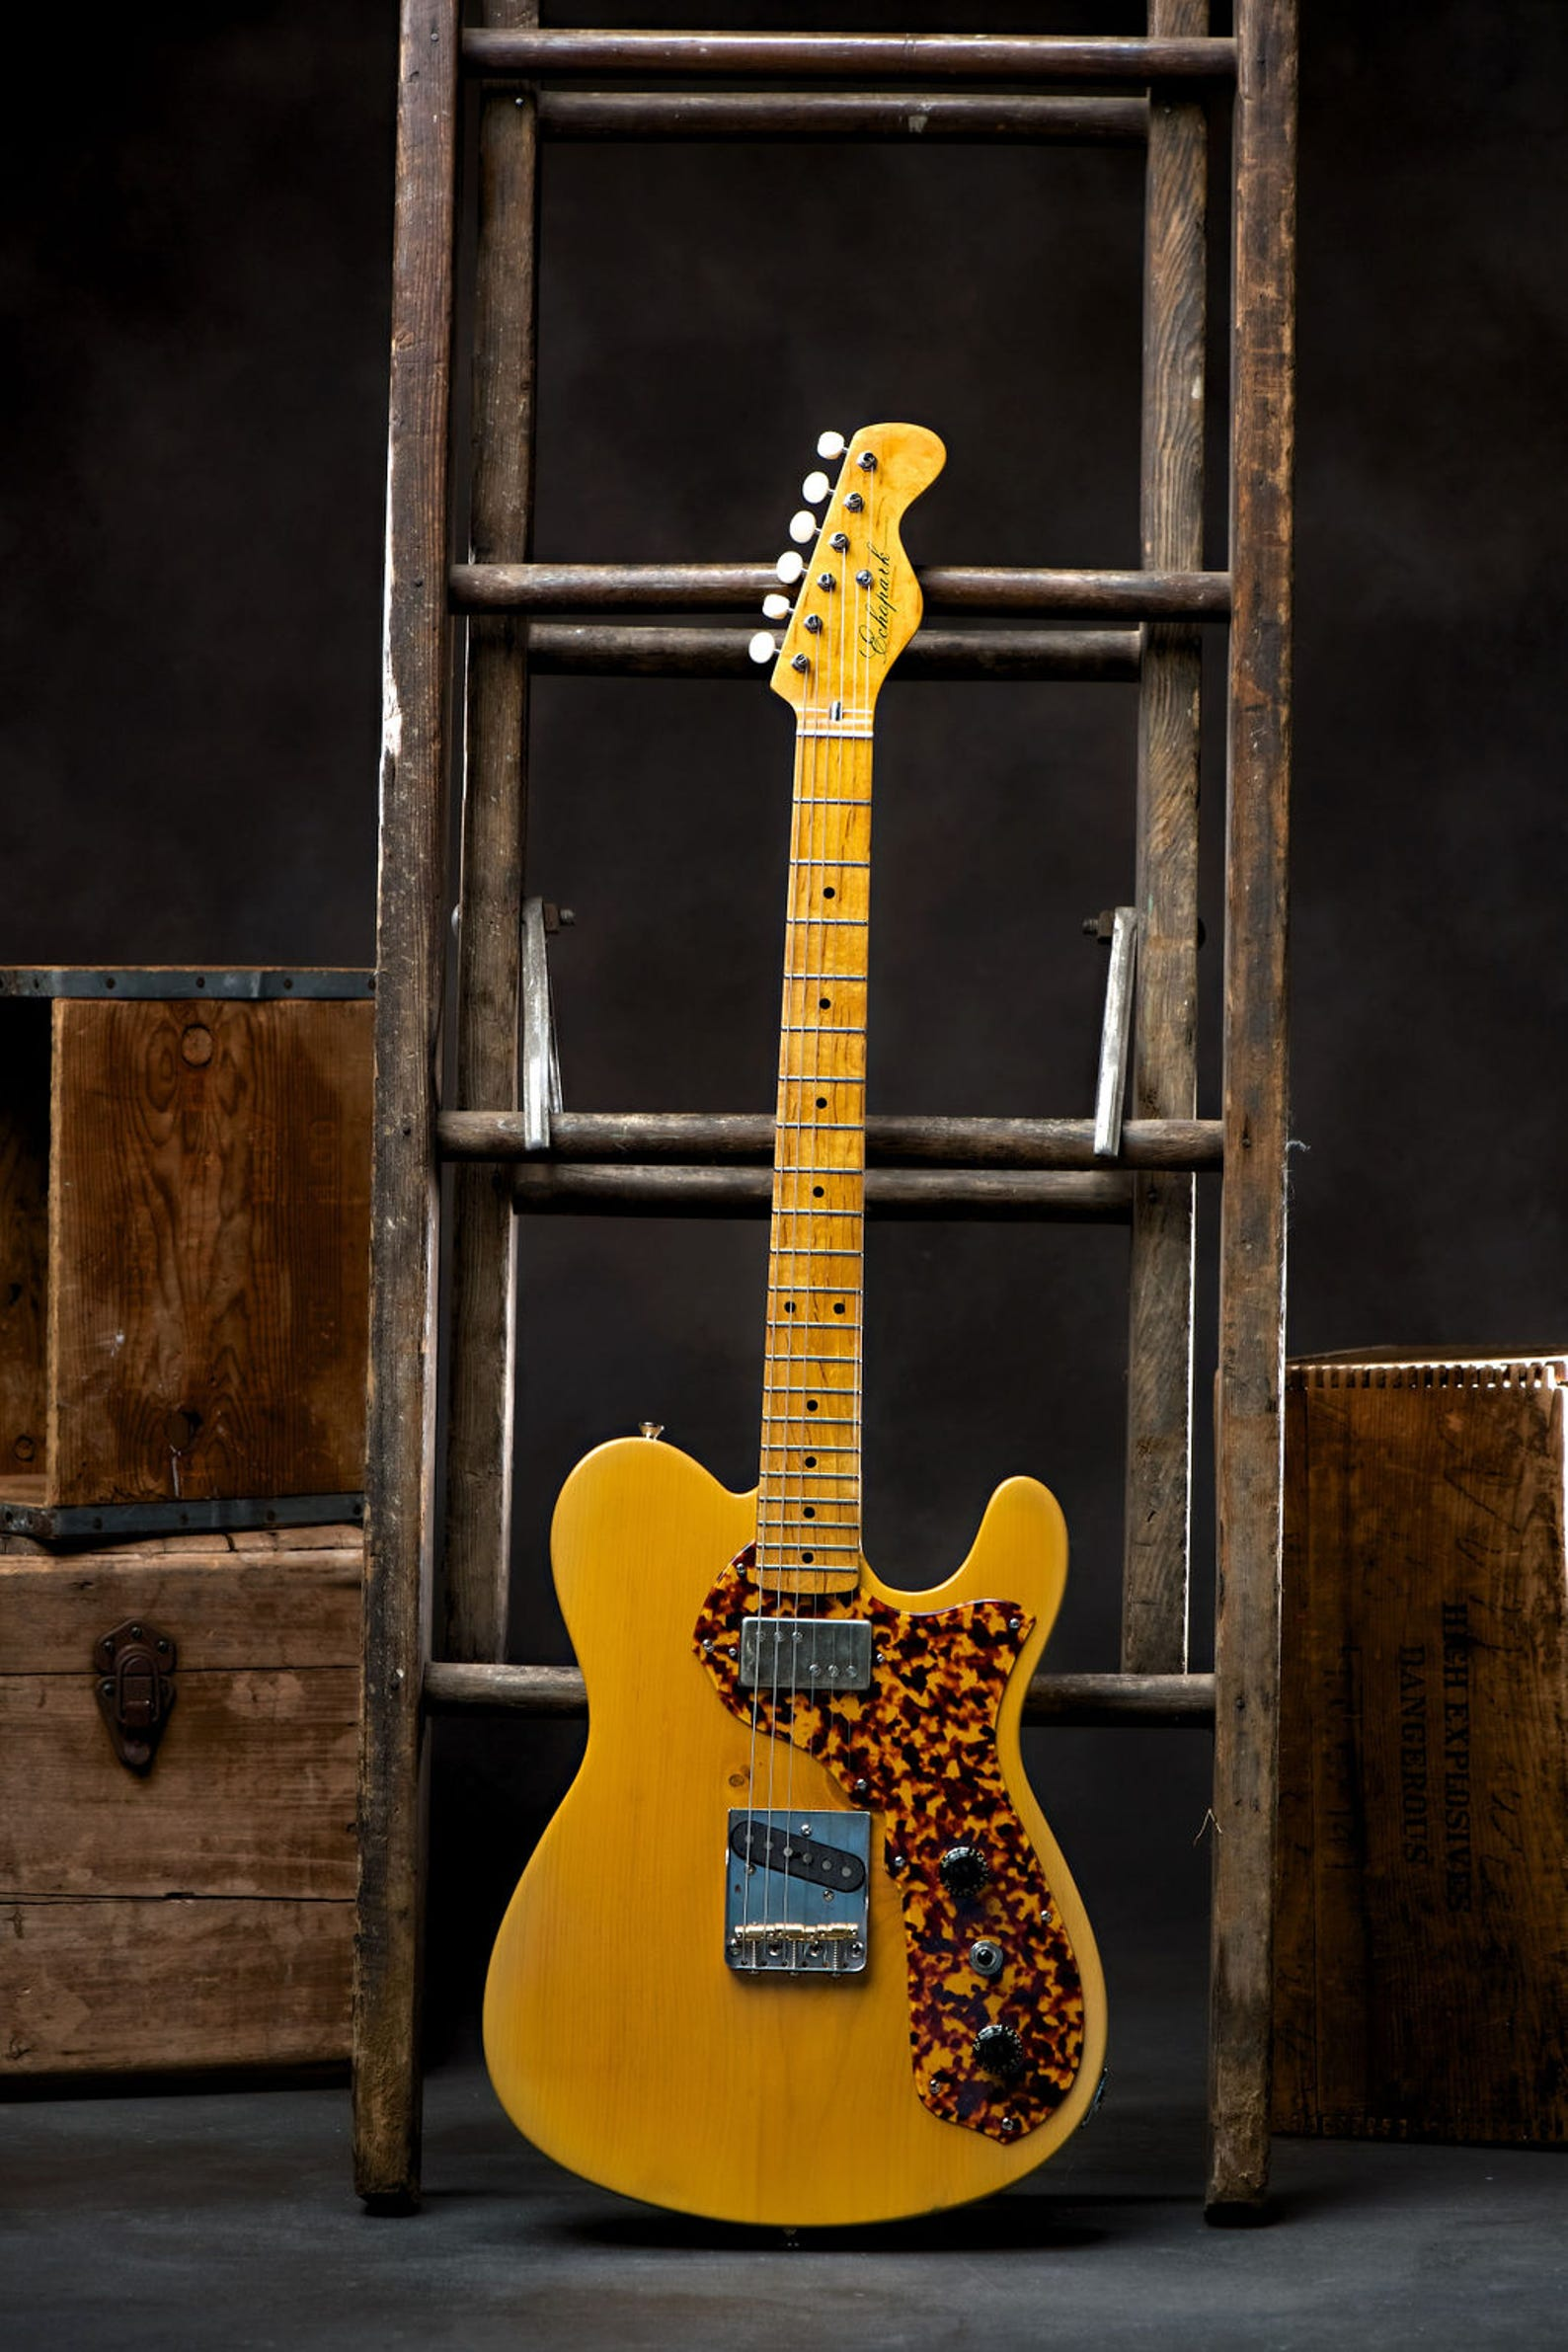 The handmade one-of-a-kind guitar Gabriel Currie made for Rolling Stones guitarist Keith Richards using pine that had been submerged in Michigan lakes for 100 years.